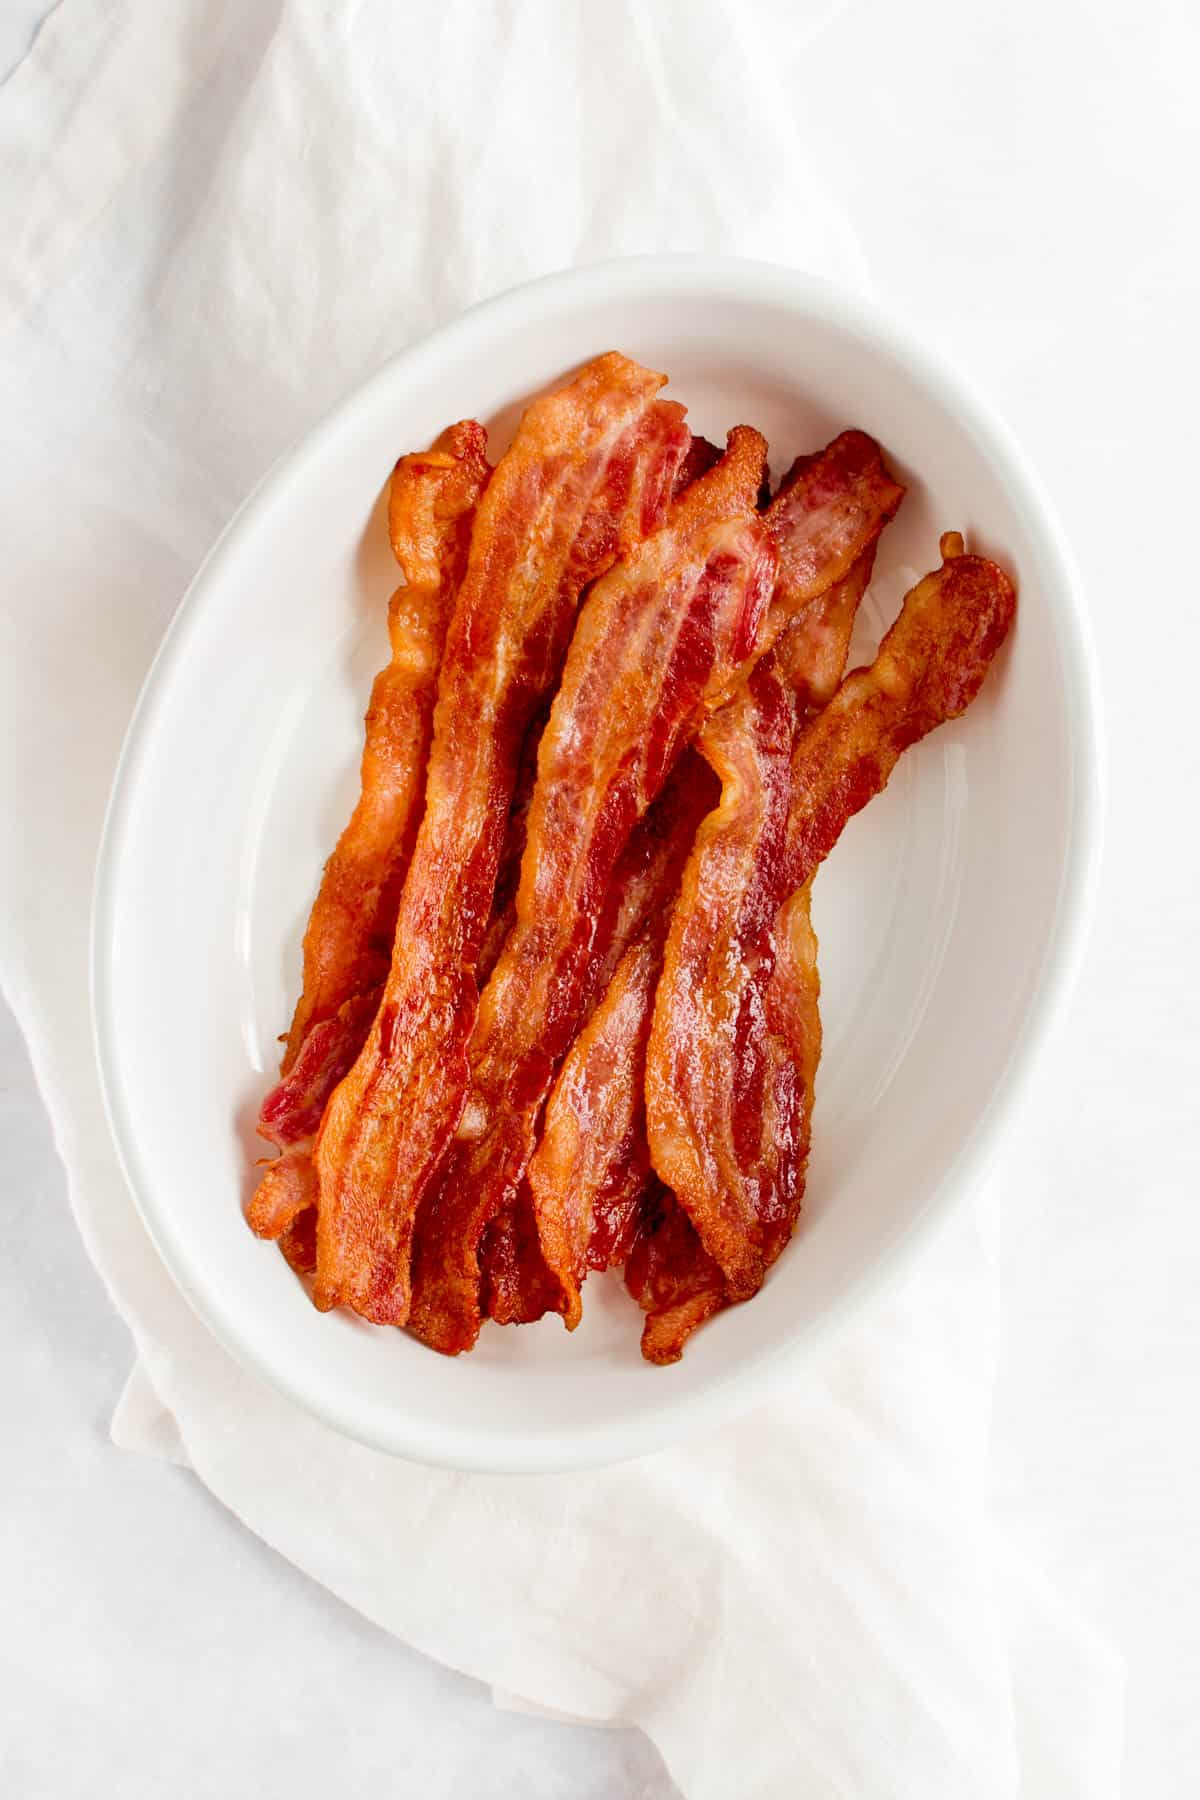 Bacon in a serving platter.